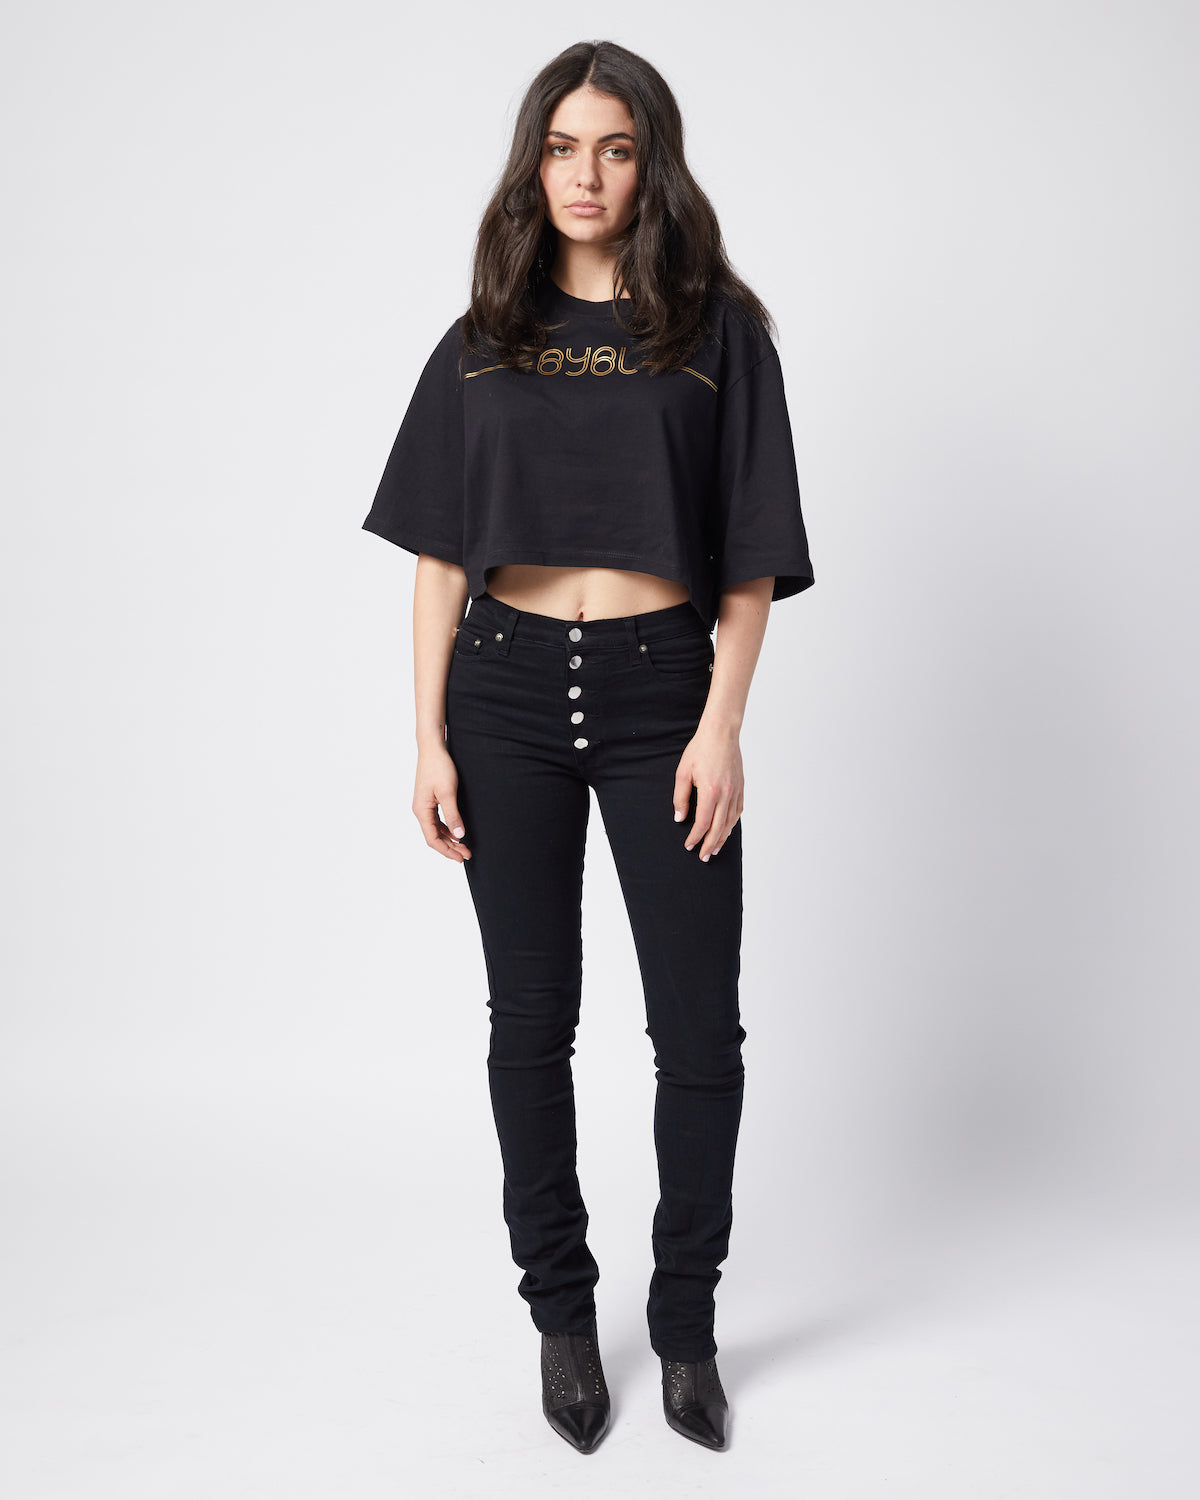 Carmen Crop Tee. Black with gold print.